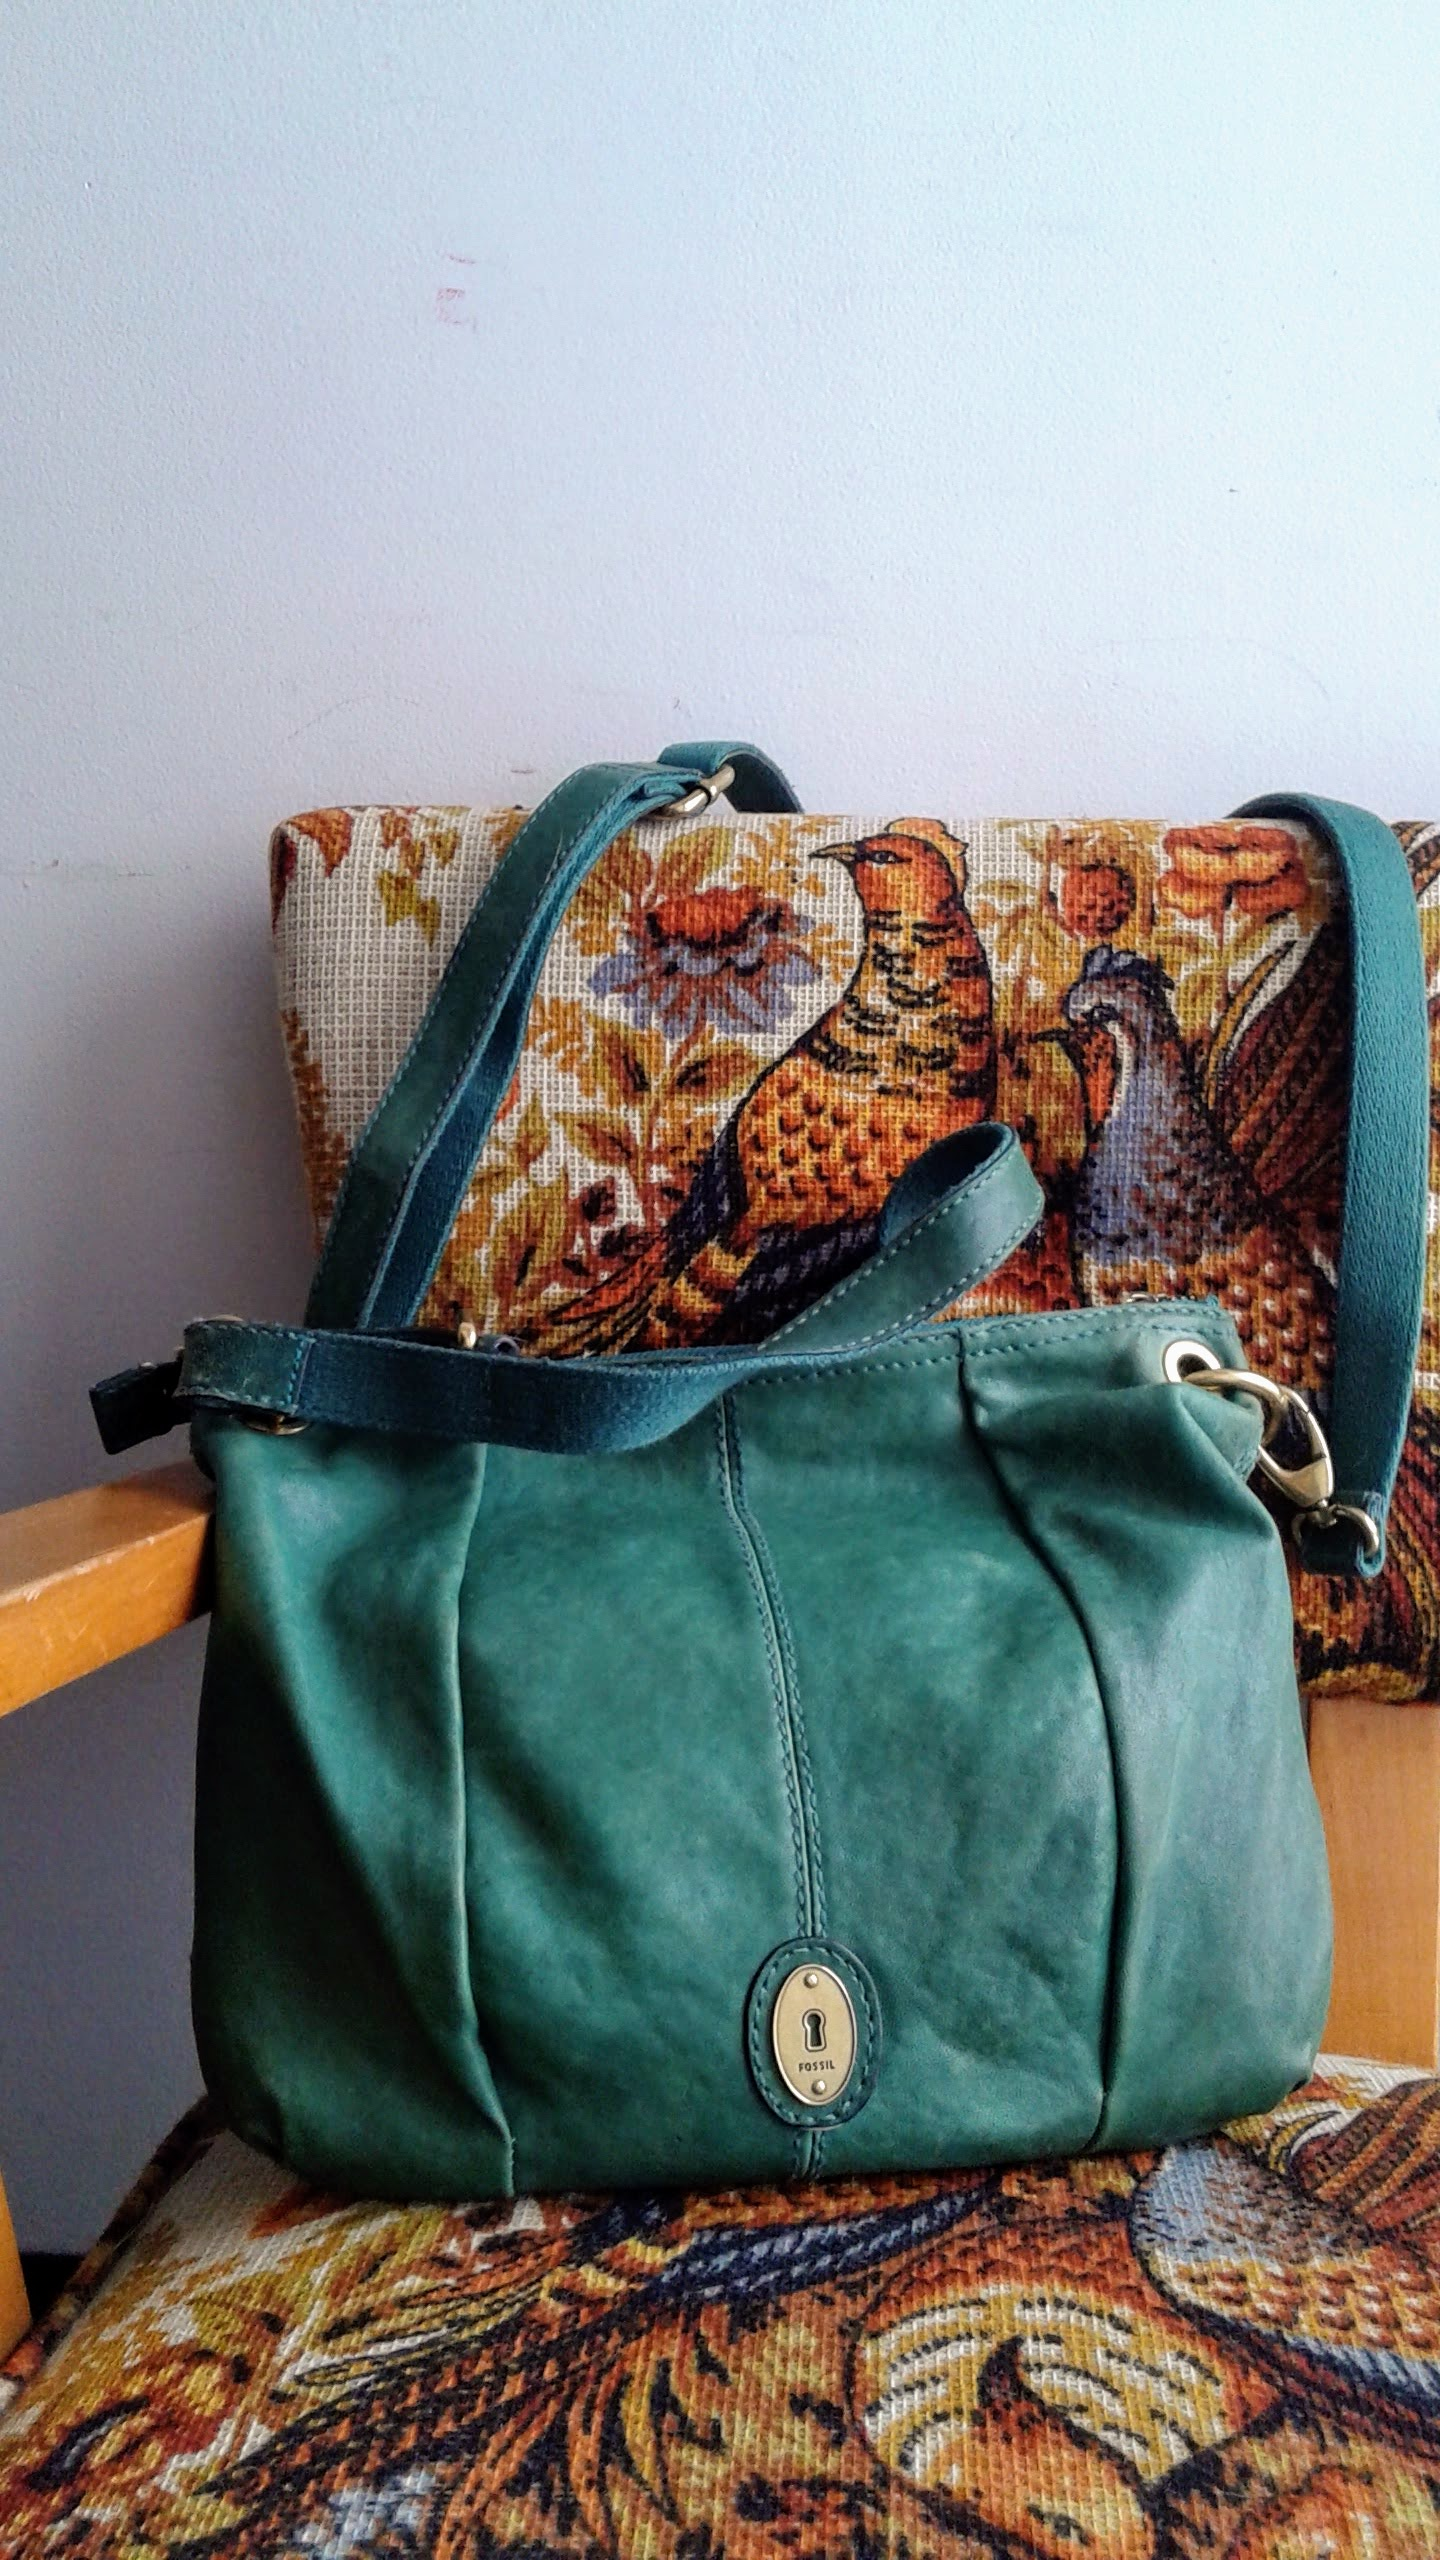 Fossil bag, $48